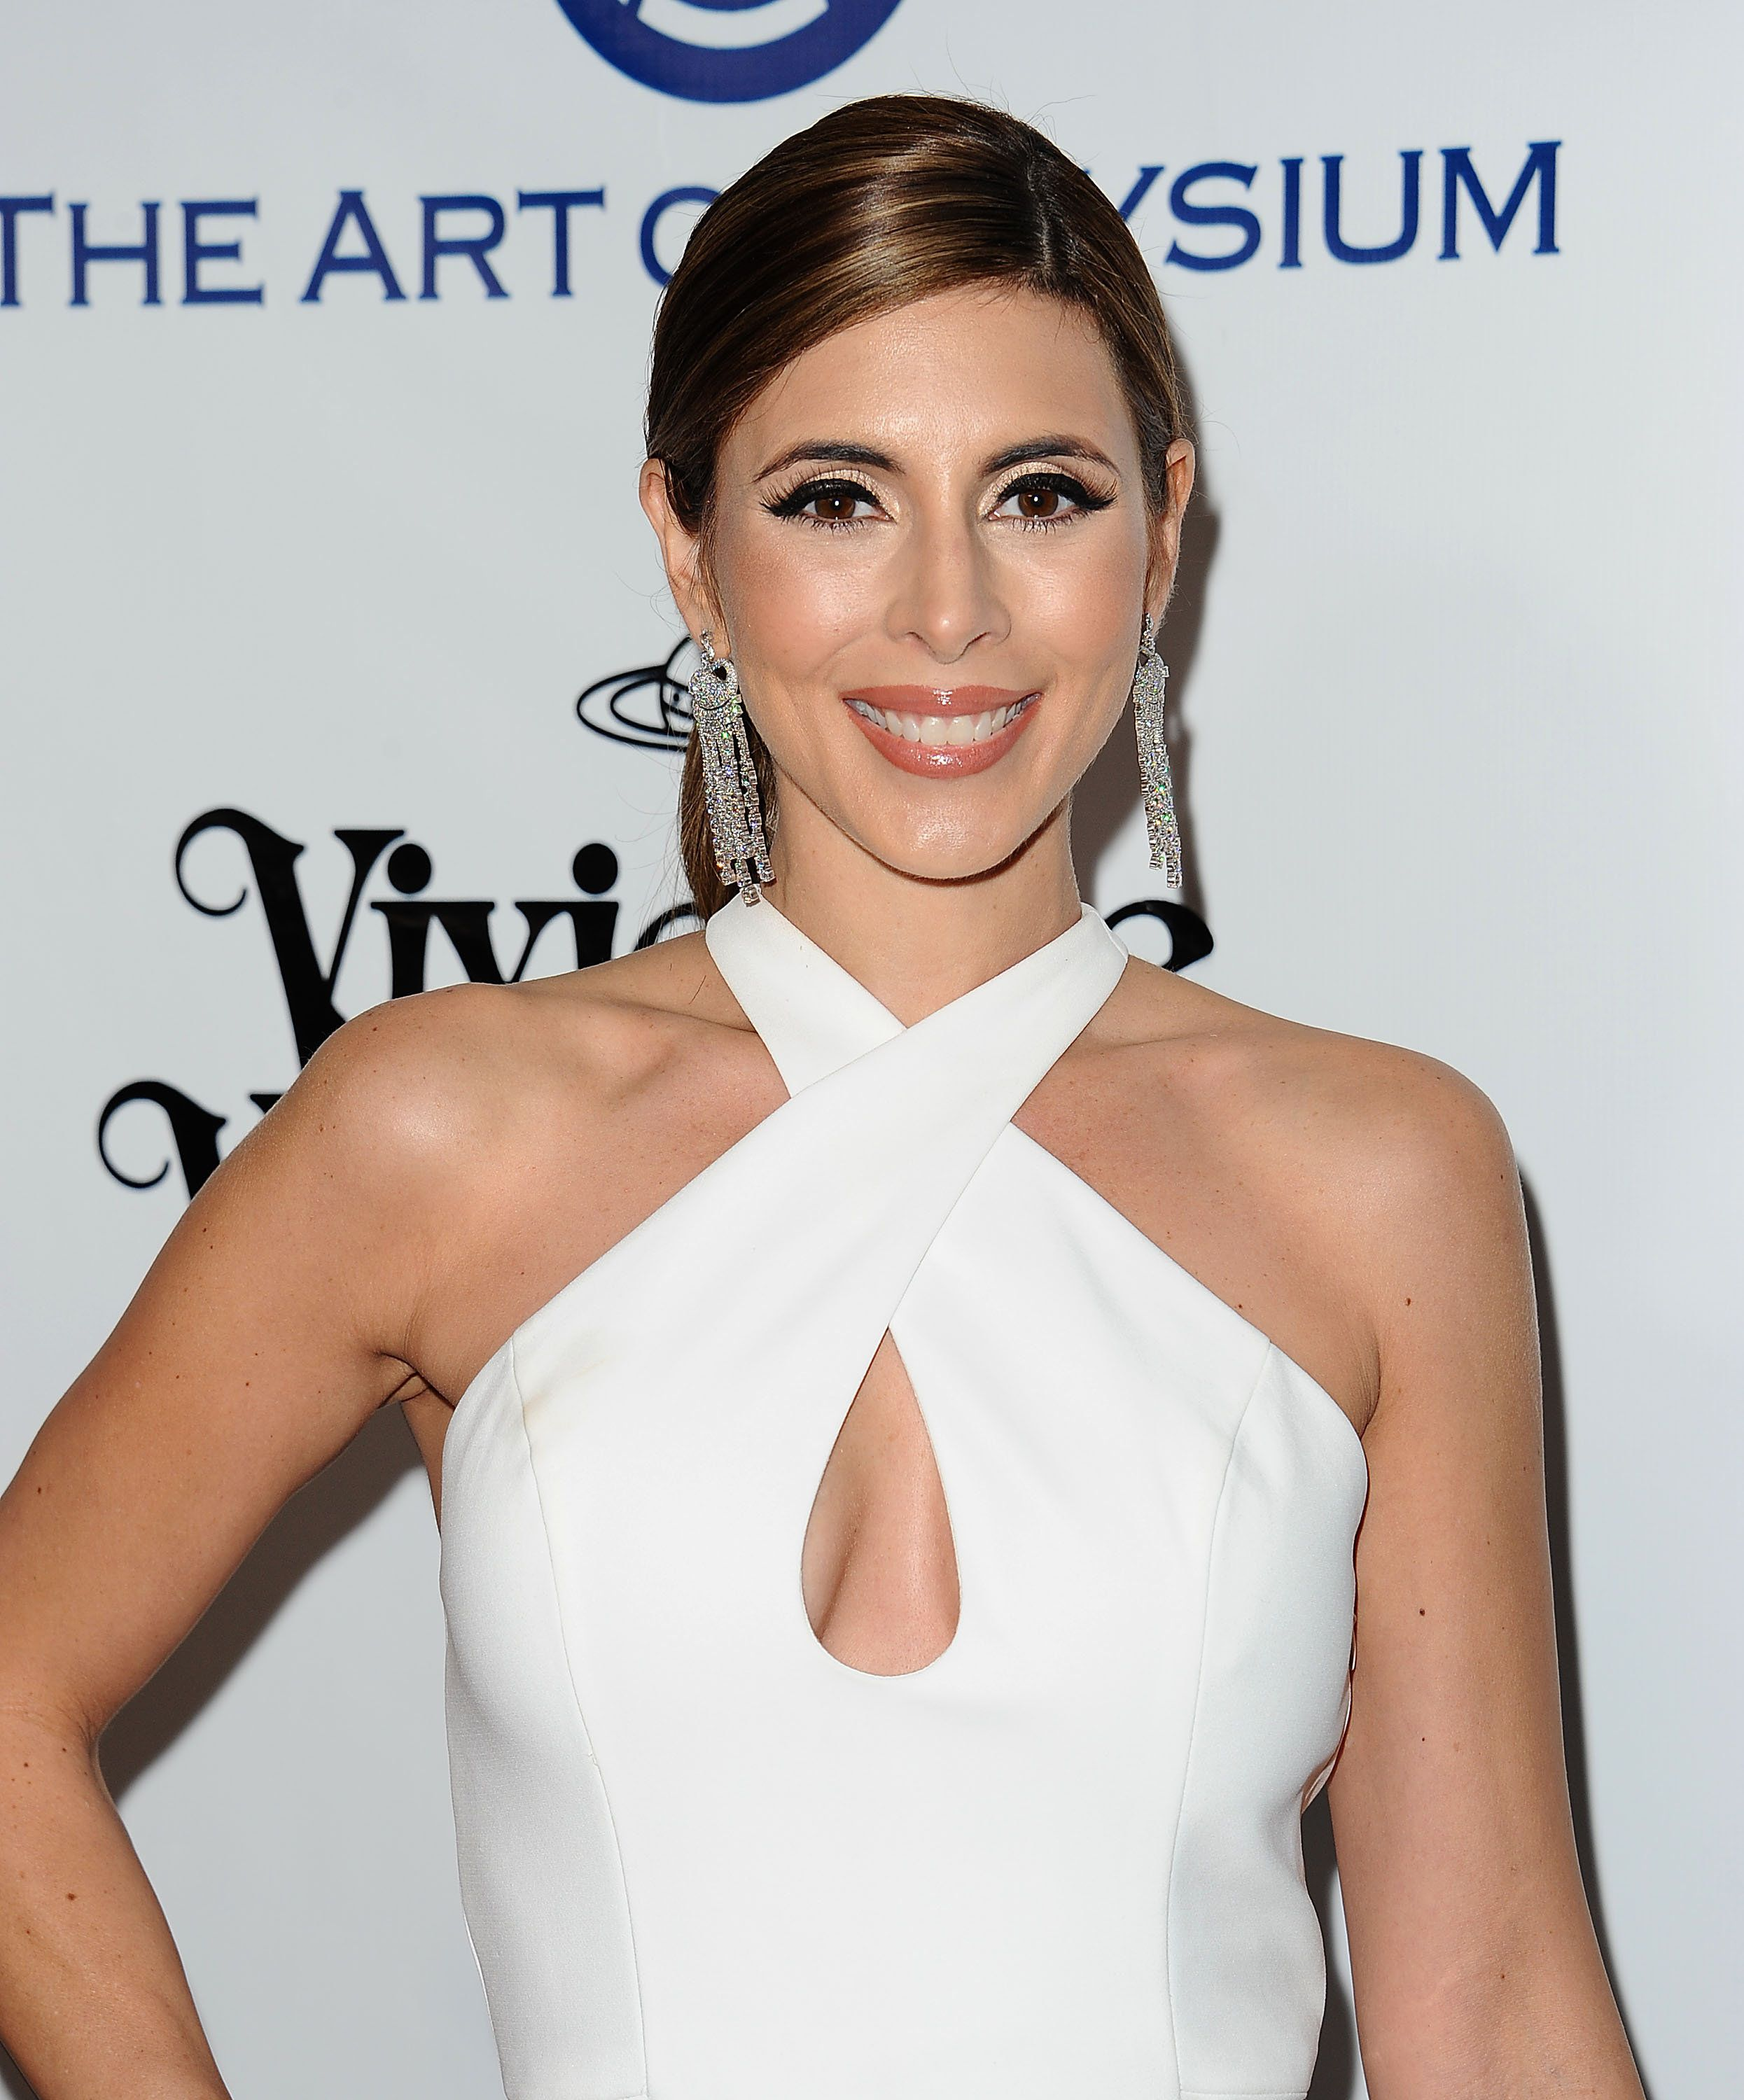 CULVER CITY, CA - JANUARY 09:  Actress Jamie-Lynn Sigler attends Art of Elysium's 9th annual Heaven Gala at 3LABS on January 9, 2016 in Culver City, California.  (Photo by Jason LaVeris/FilmMagic)